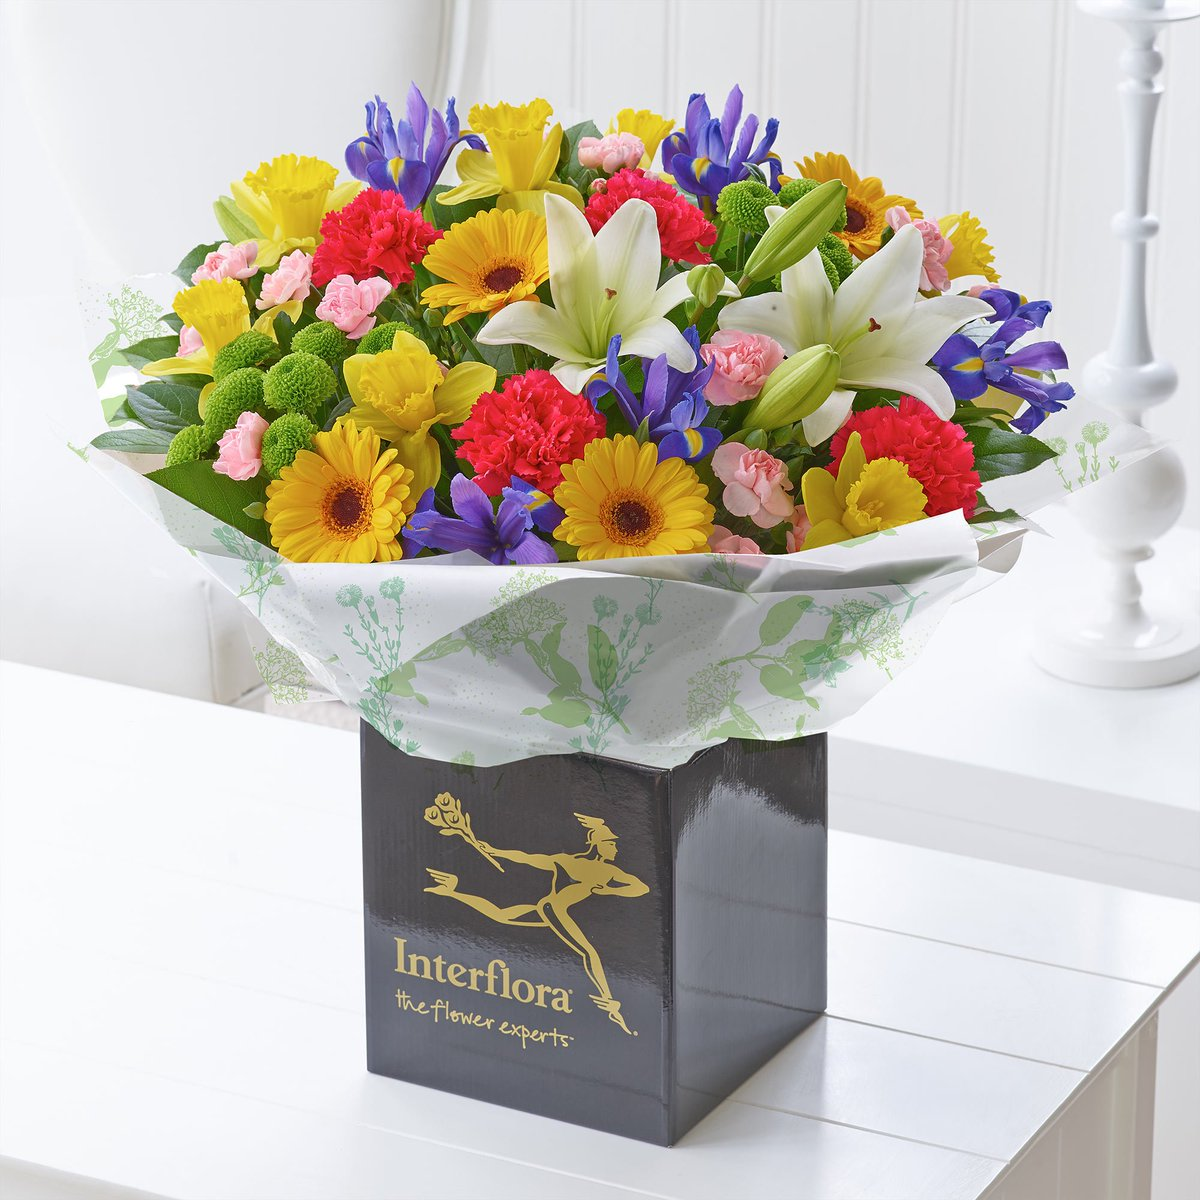 Interflora On Twitter Our Bouquet Of The Month Is Full Of The Joys